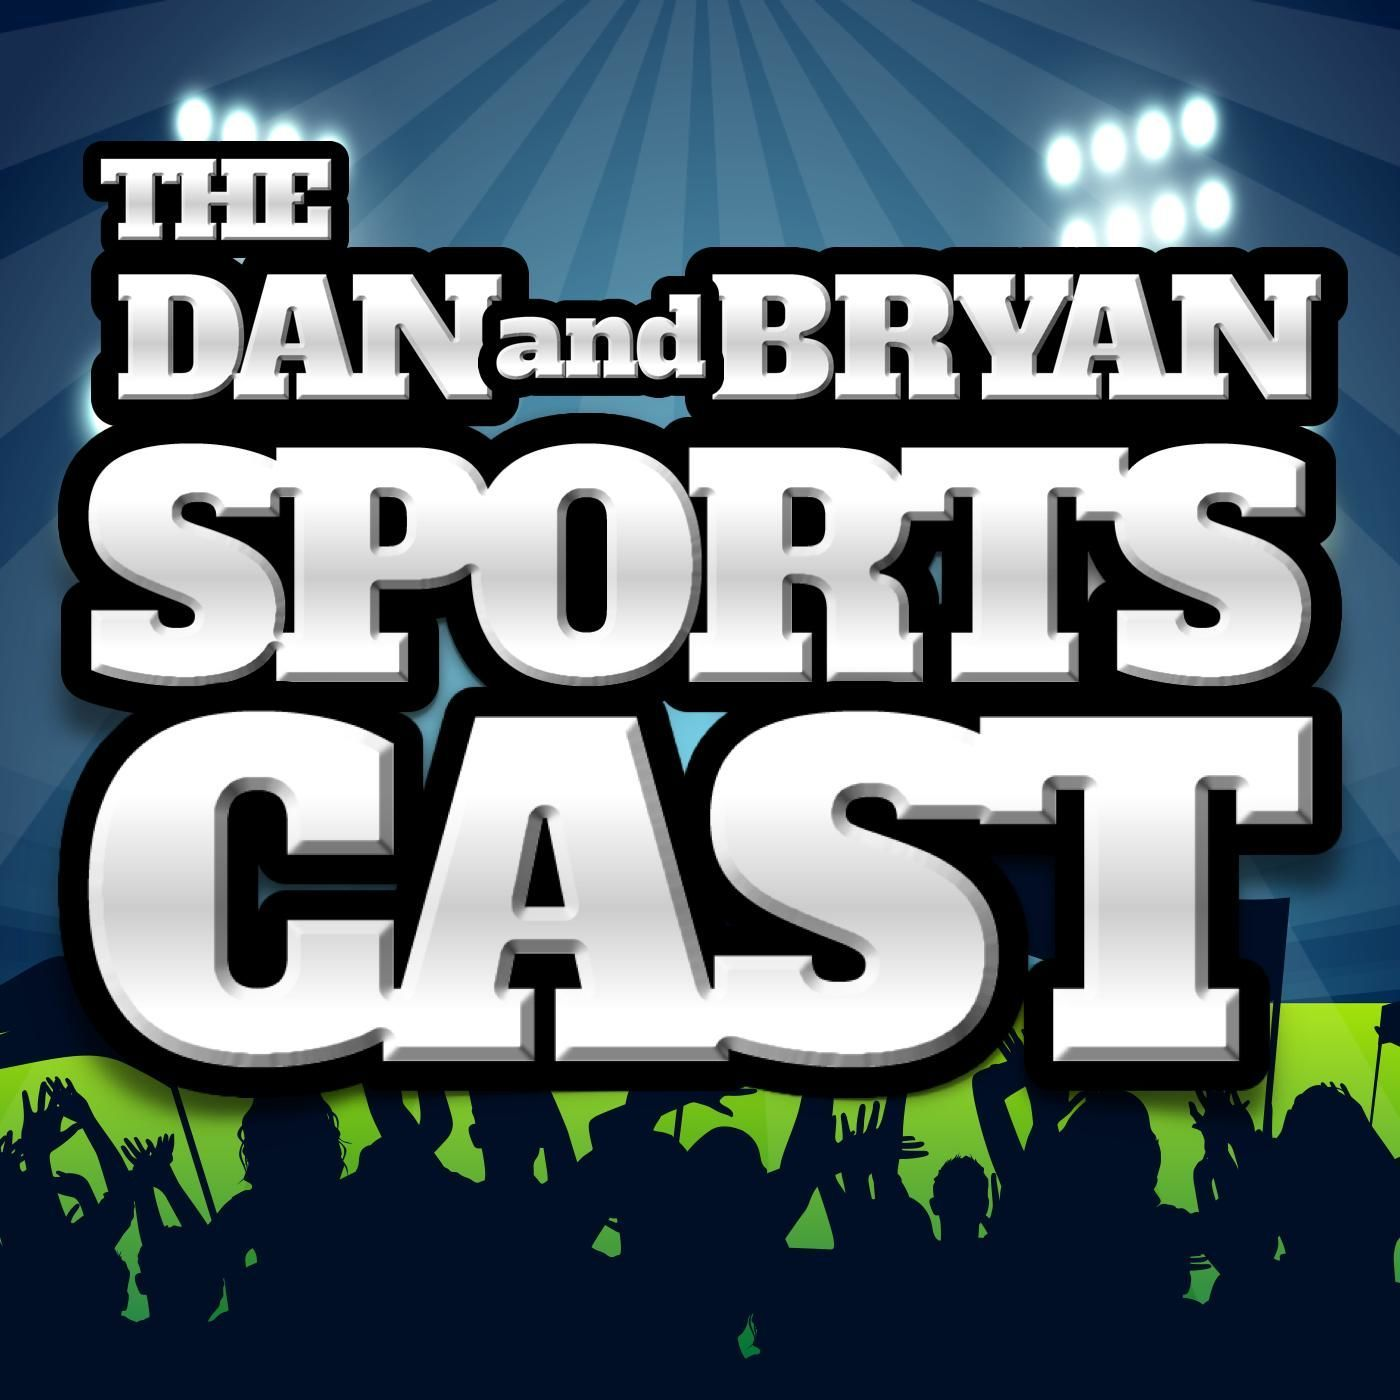 048: The Lebron James vs Charles Barkley Episode and National Signing Day 2017